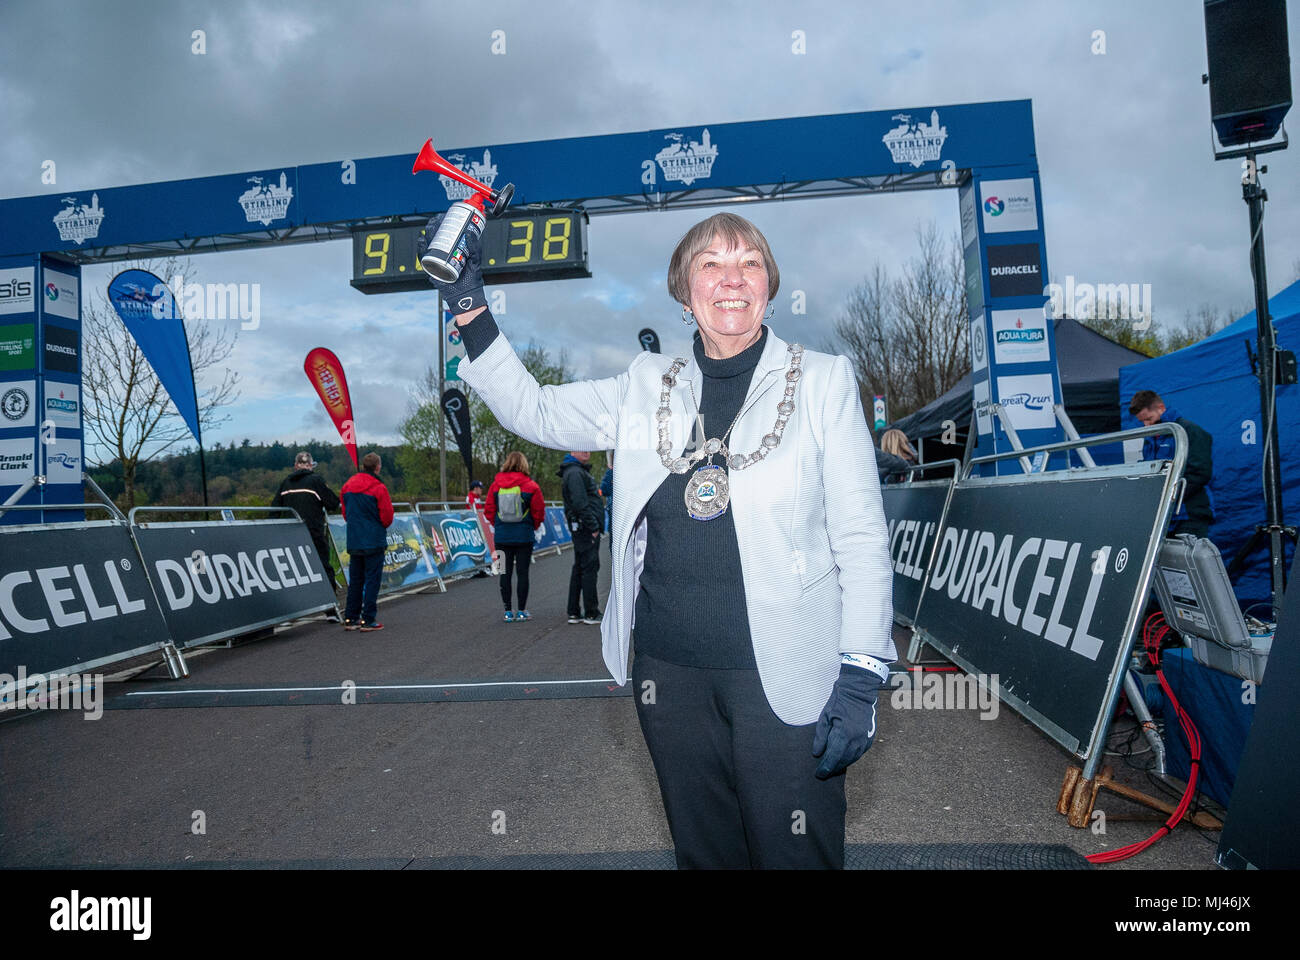 Stirling's Provost, Councillor Christine Simpson poses with a Klaxon for photographers prior to commencing the 2018 Stirling Scottish Half Marathon. - Stock Image